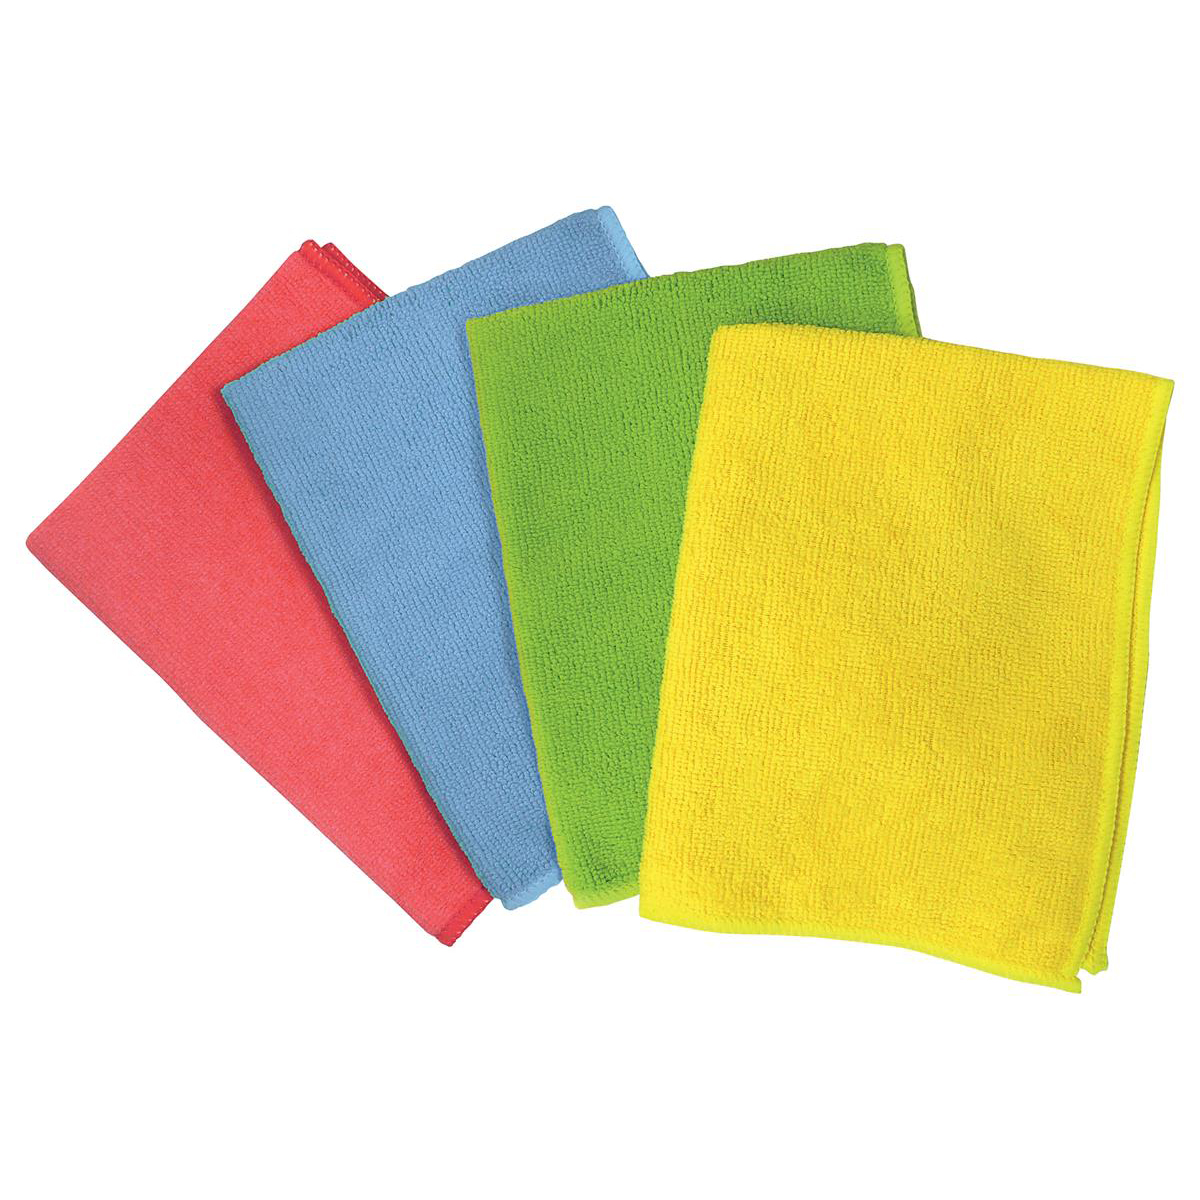 5 Star Facilities Microfibre Cleaning Cloths Colour-coded for Dry or Damp Multi-surface Use Red Pack 6